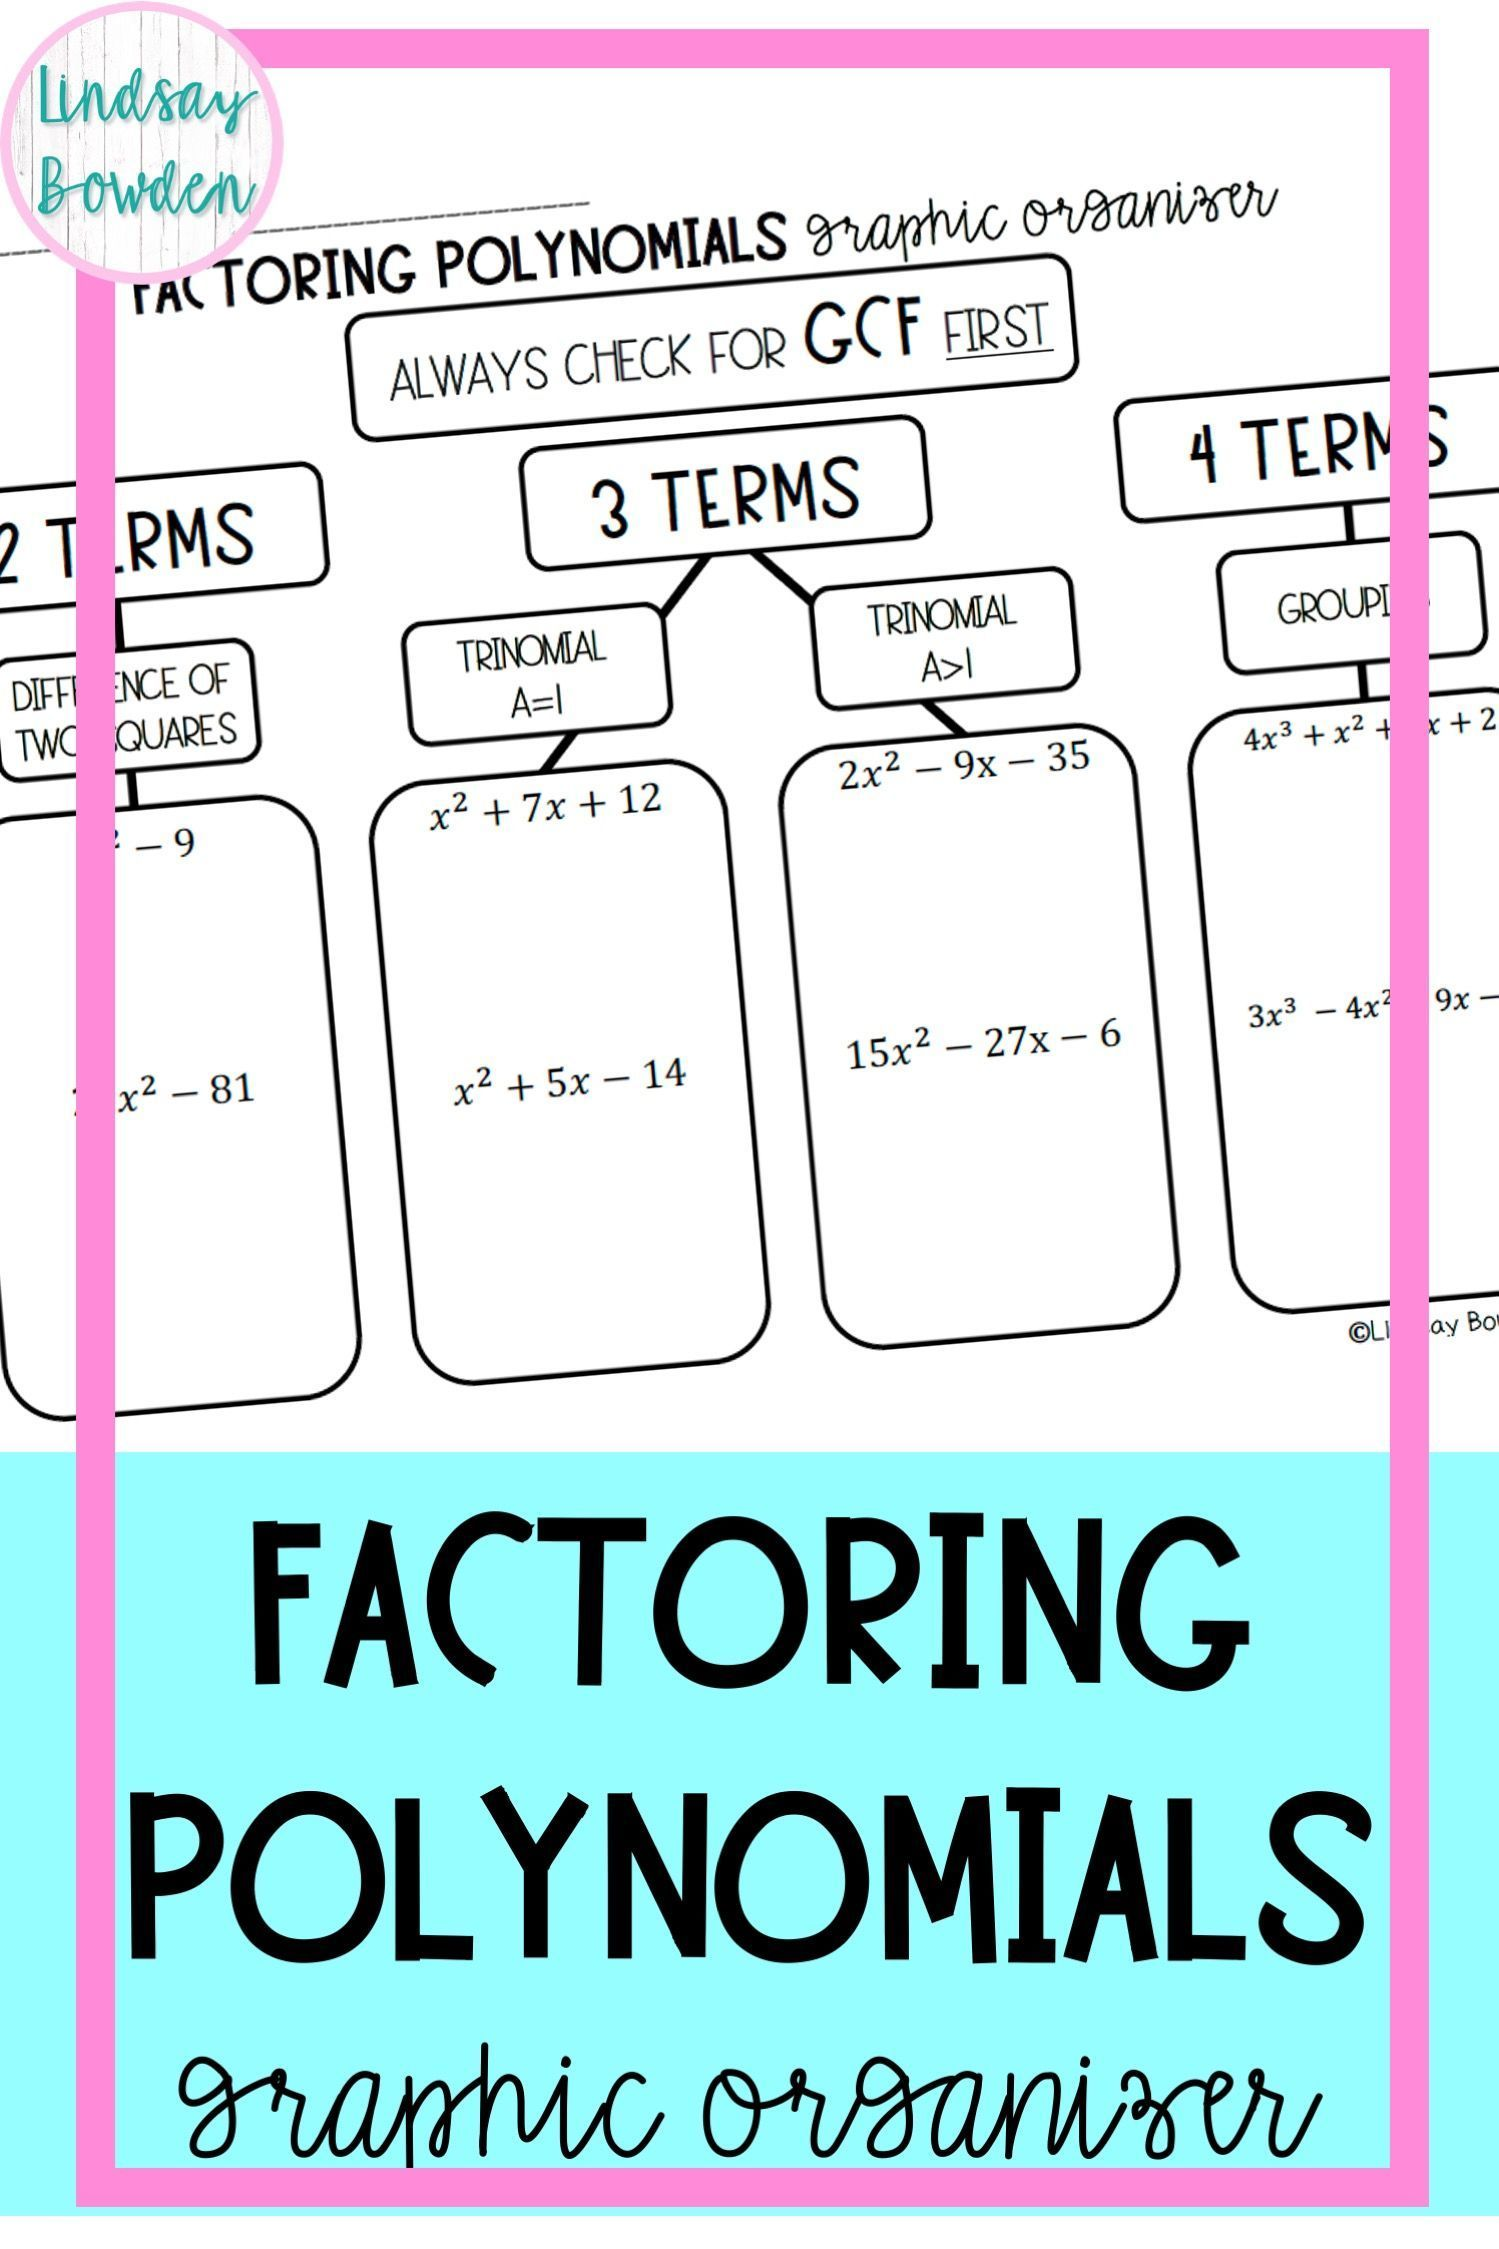 Factoring Polynomials Graphic Organizer In